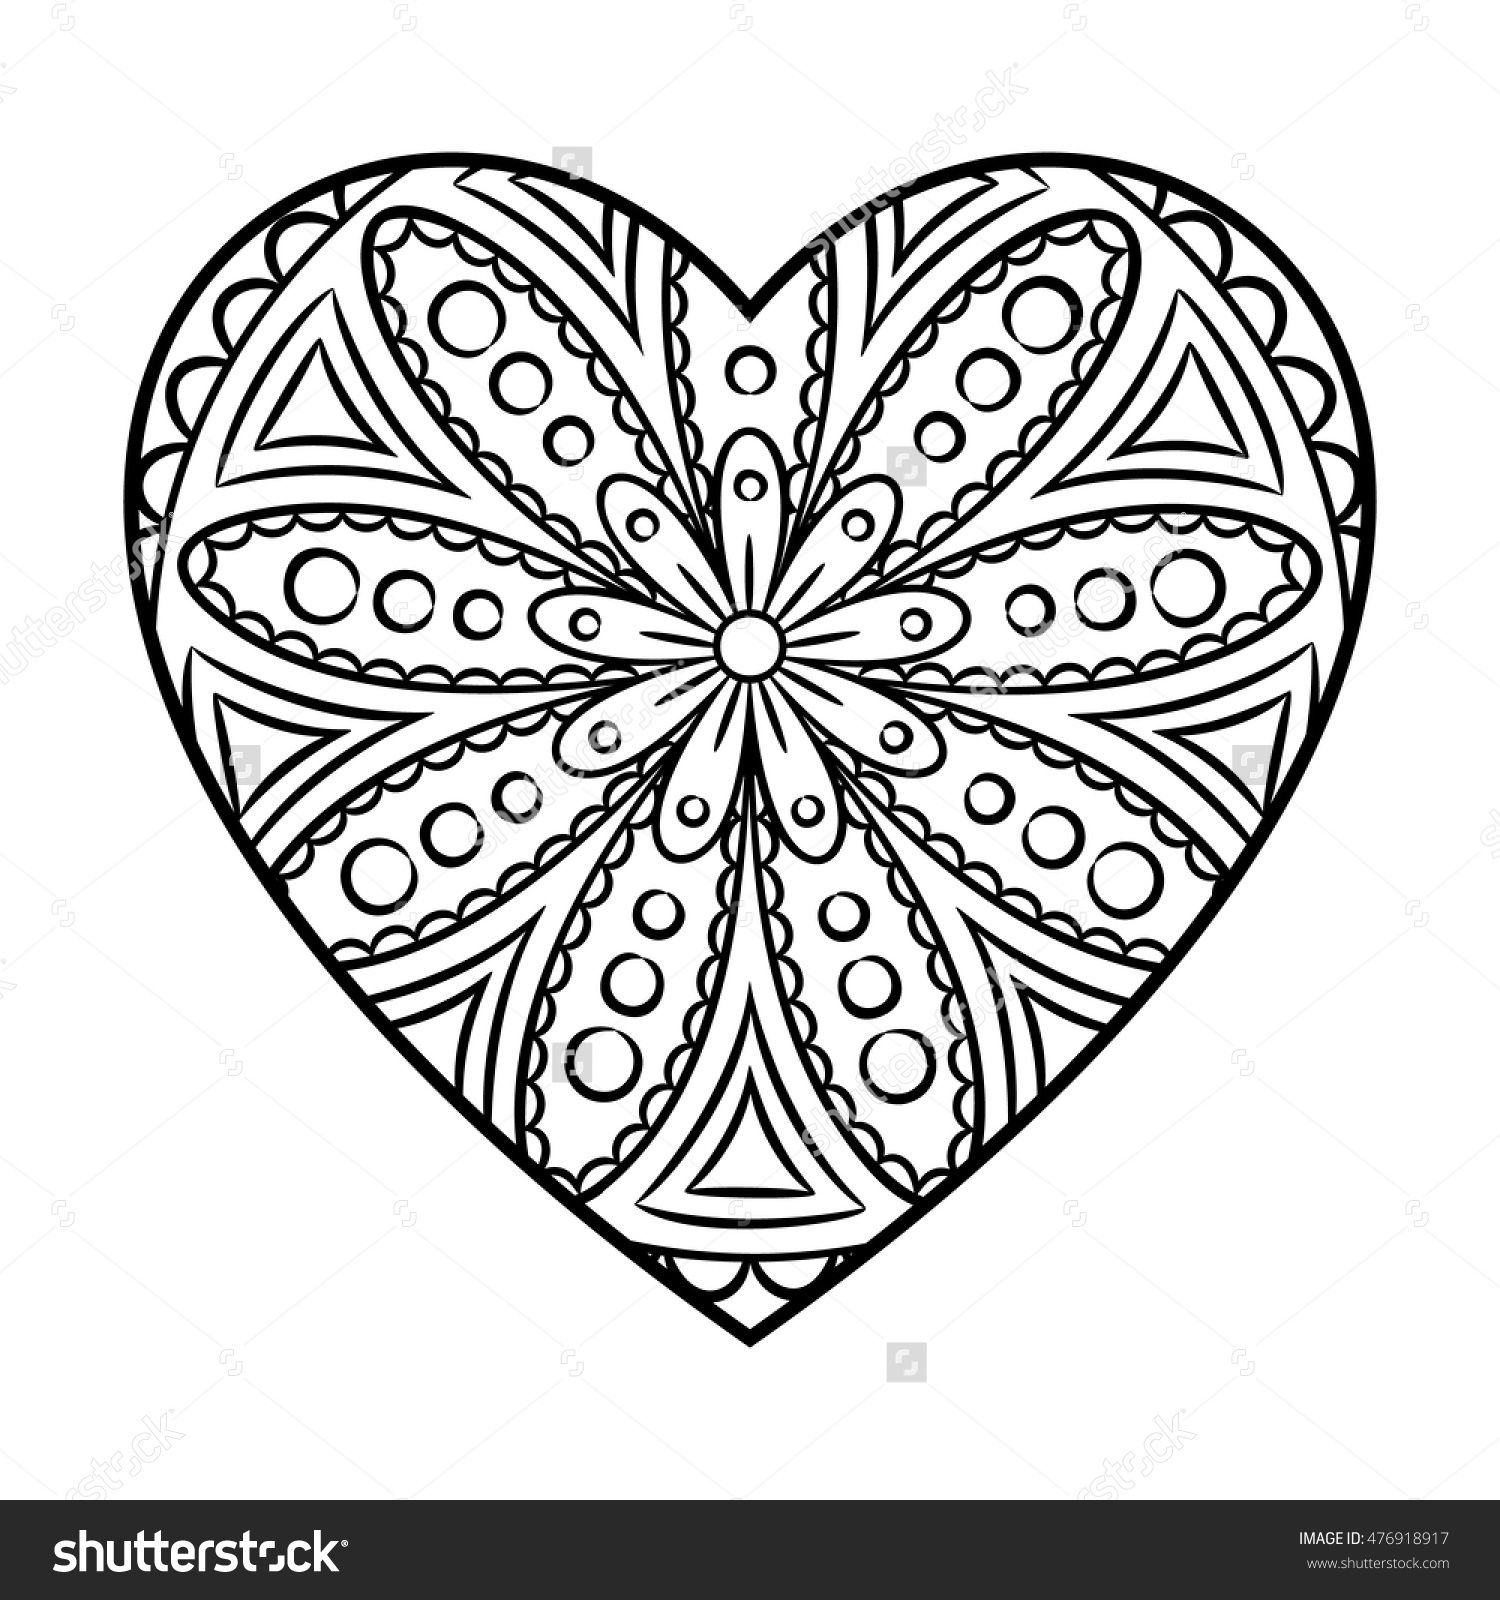 Doodle heart mandala coloring page. Outline floral design element in ...